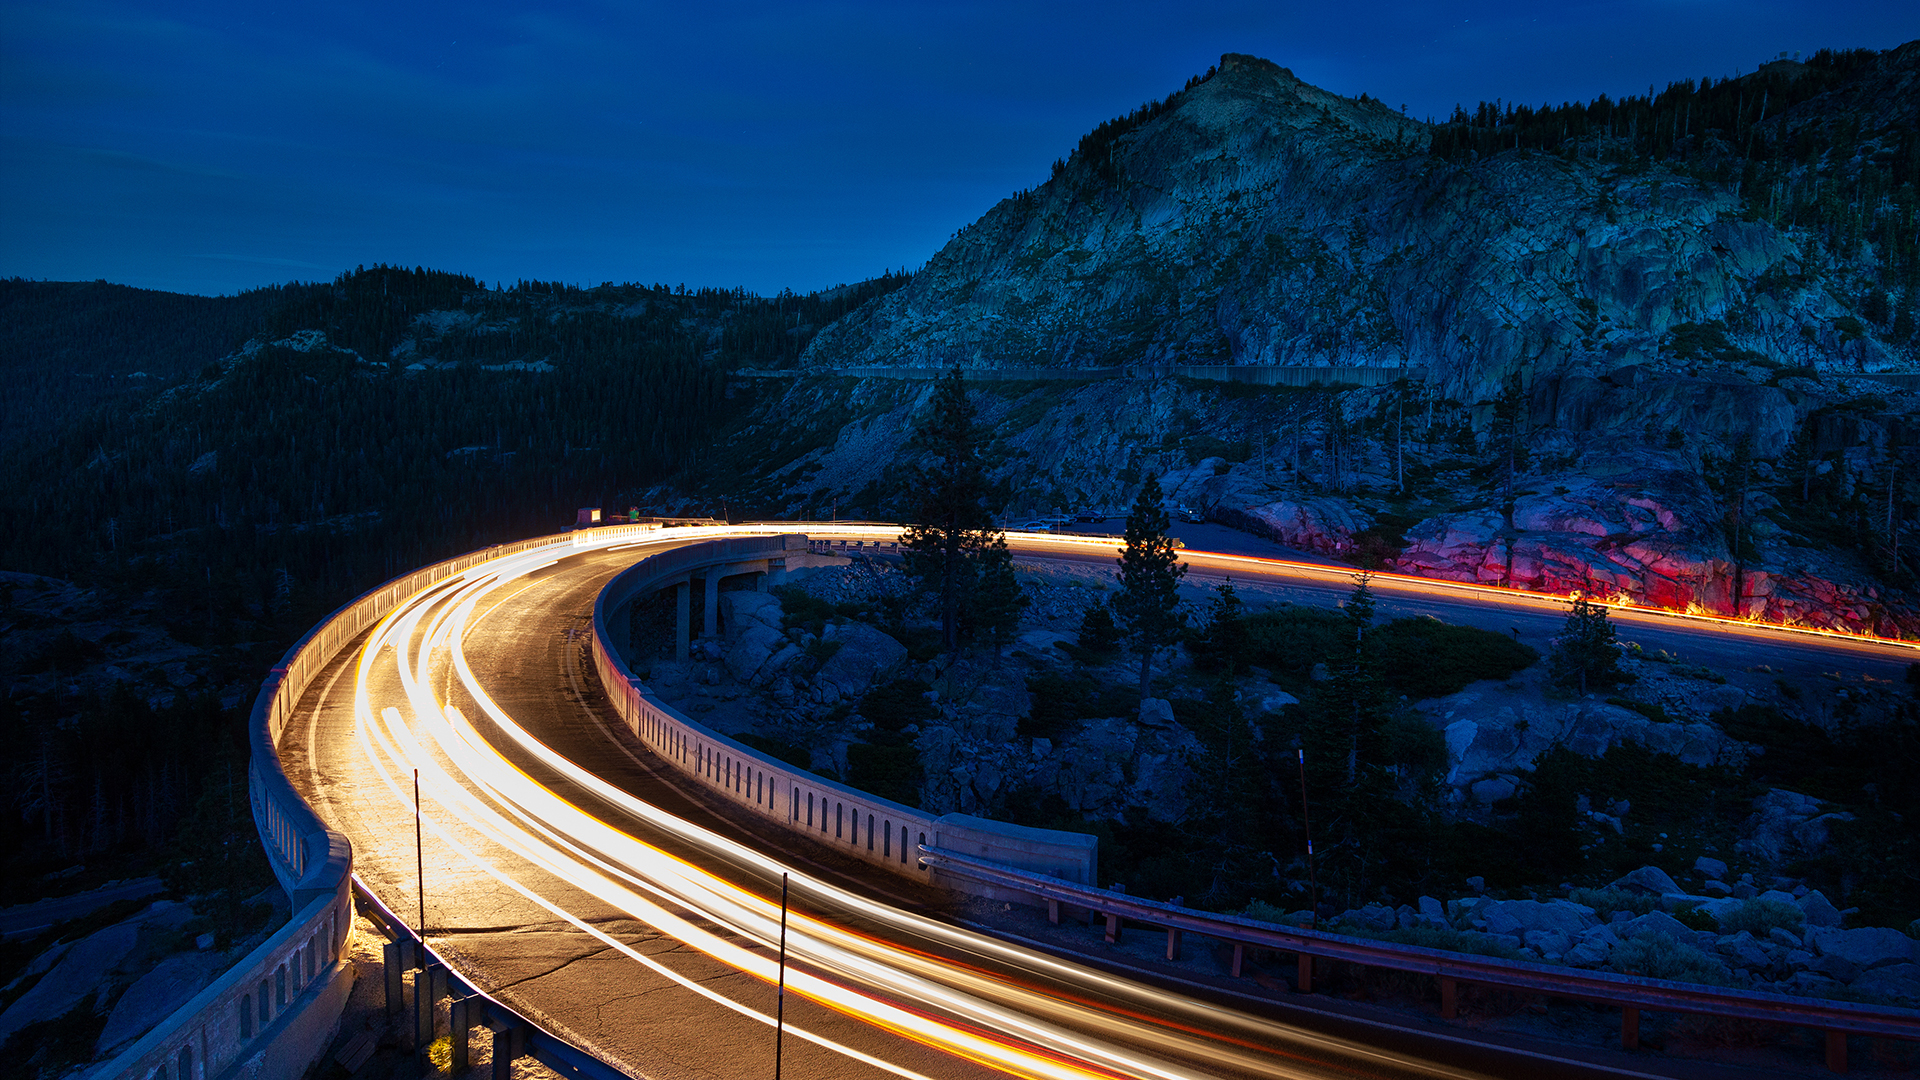 Enhancing your night photography skills: Enhancing Night and Low-Light Photos with Photoshop